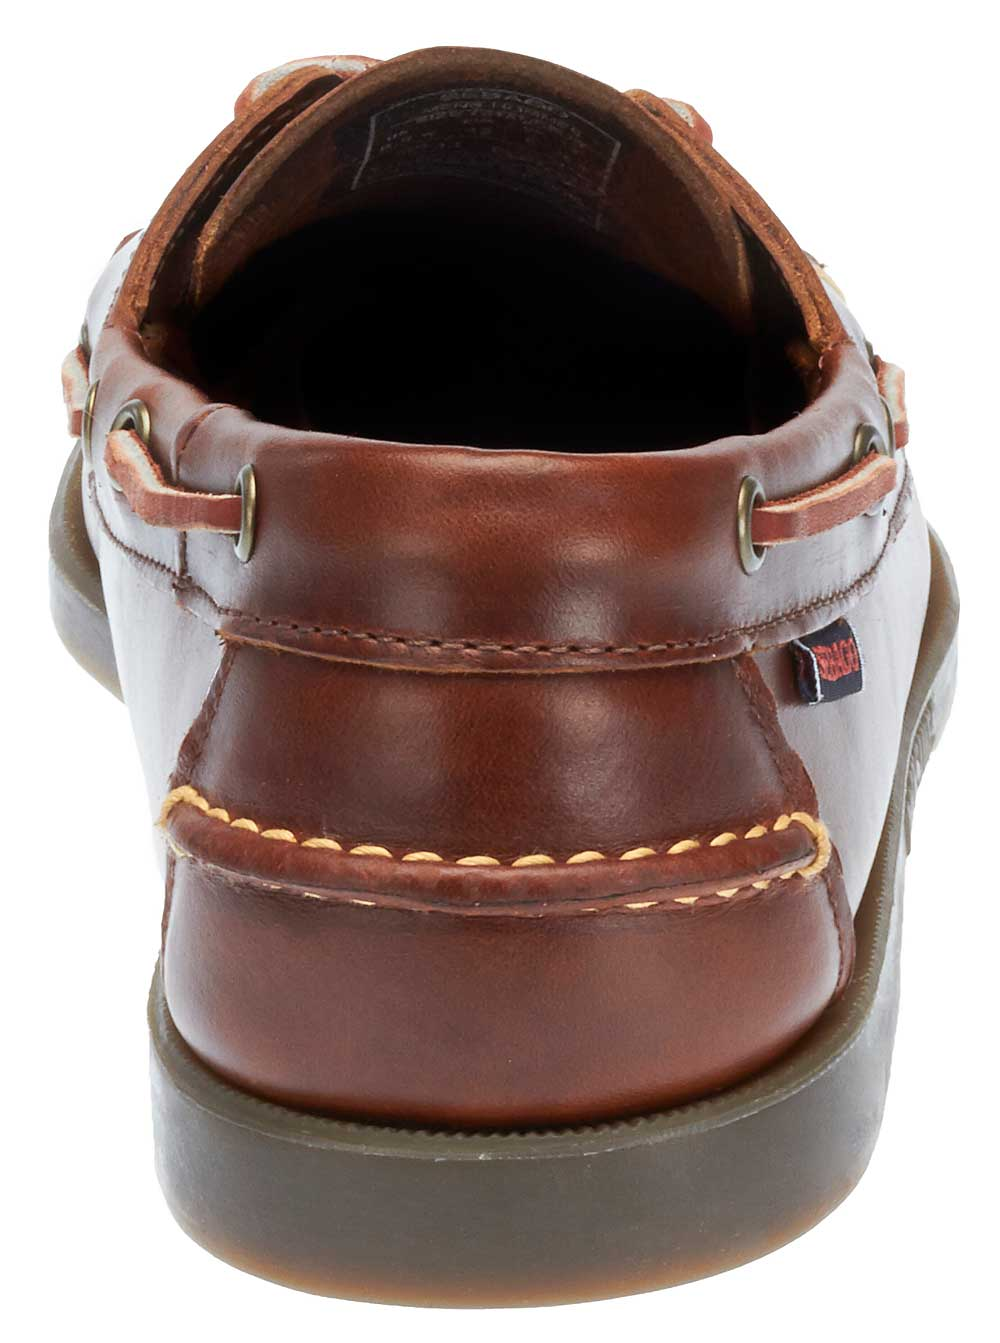 B72743 - DOCKSIDES 7.5 / Brown_Oiled_Waxy / M